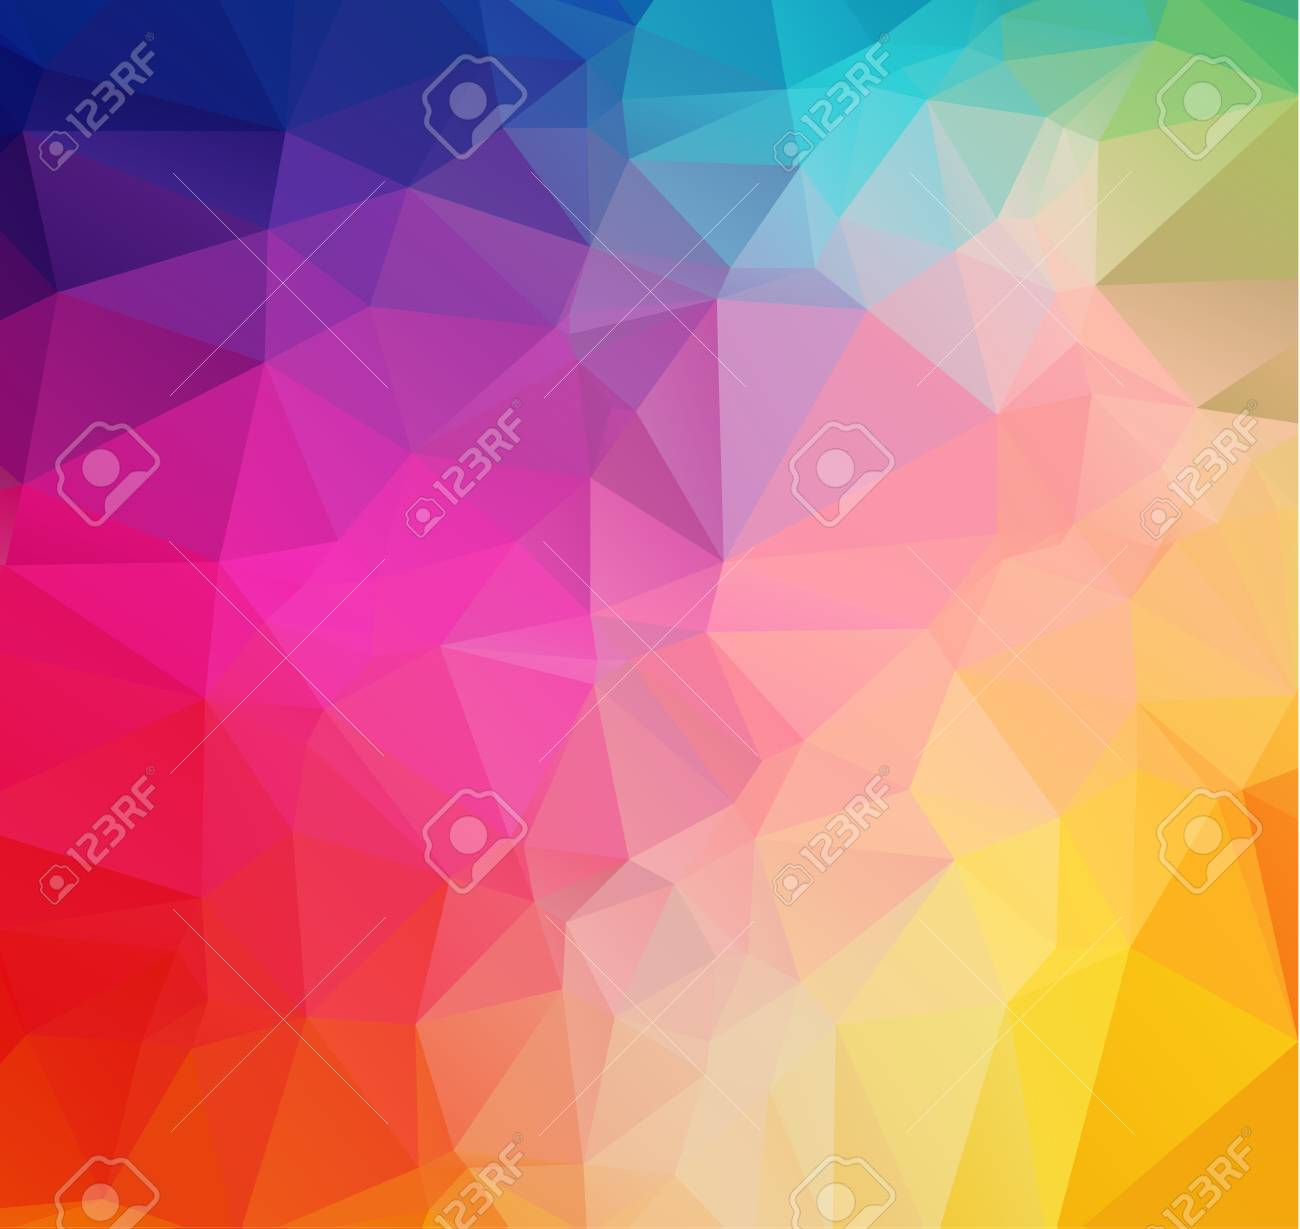 Abstract colorful Triangle Geometrical Illustration Modern Design mosaic - 54855915